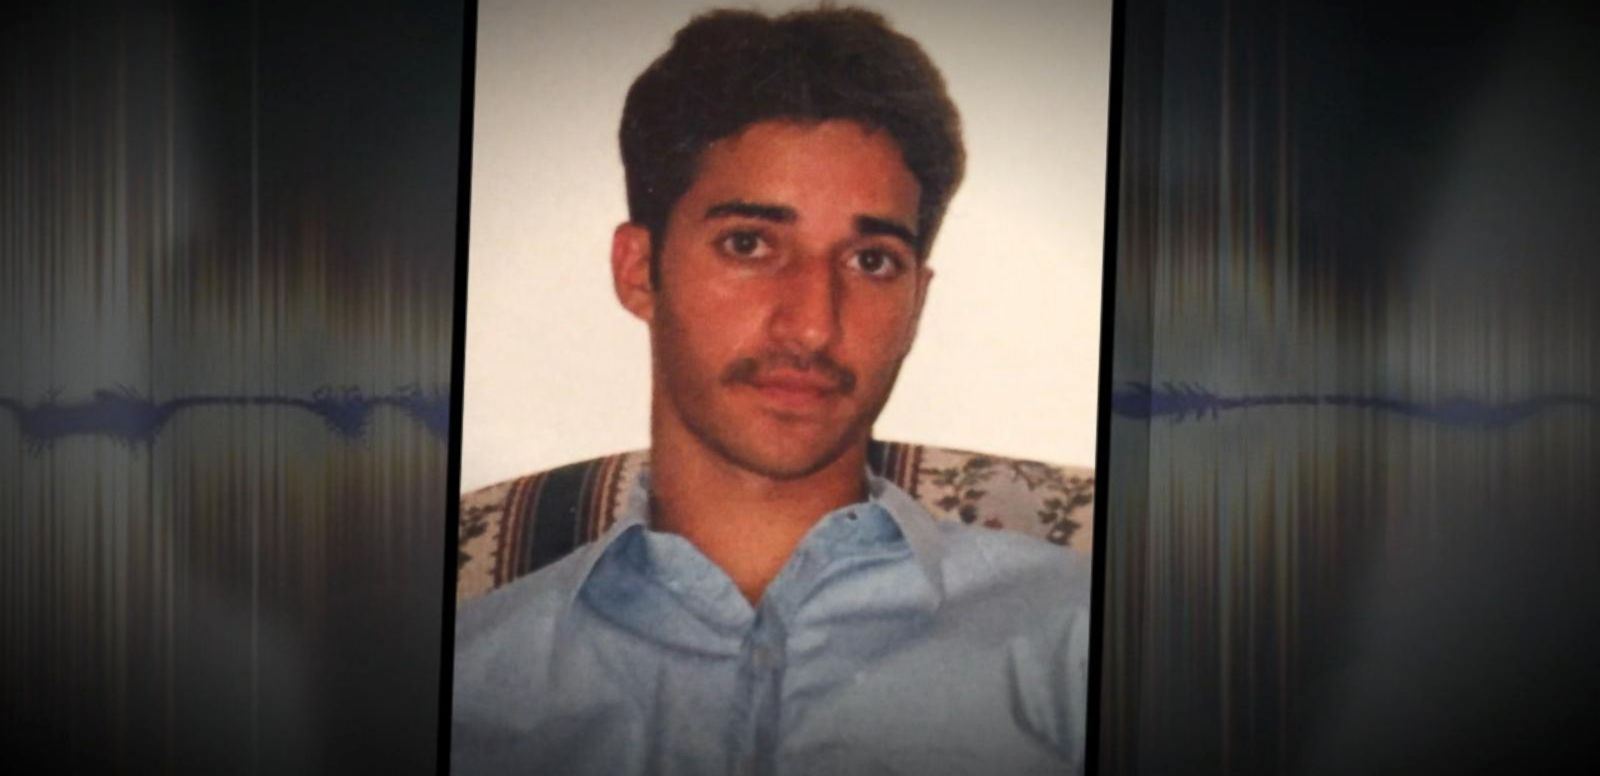 VIDEO: Convicted Killer Featured on 'Serial' Gets New Trial